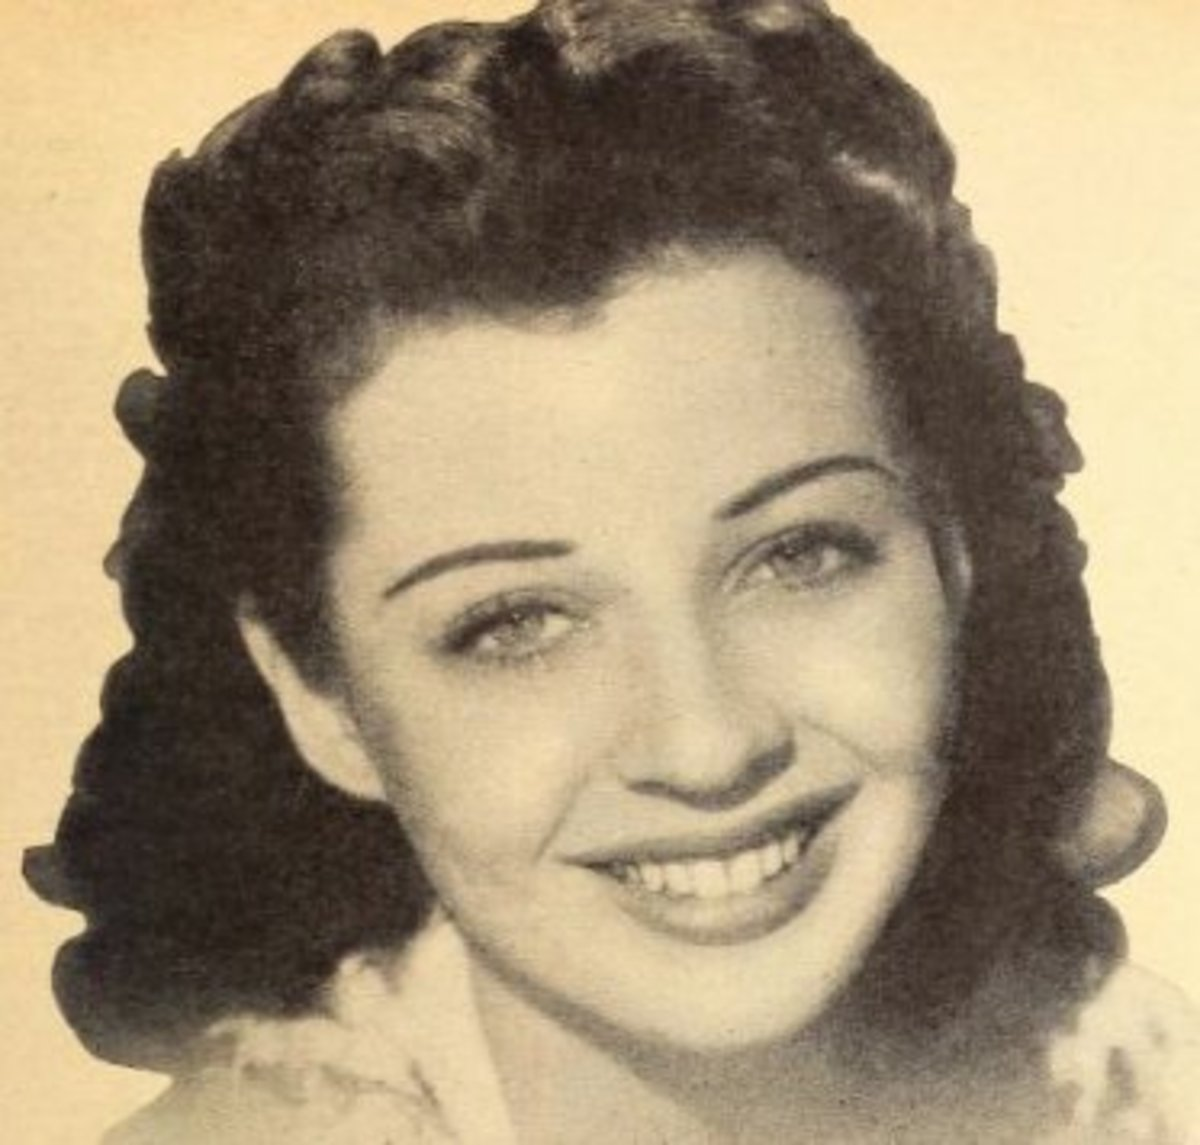 Publicity photo of actress Gail Russell.